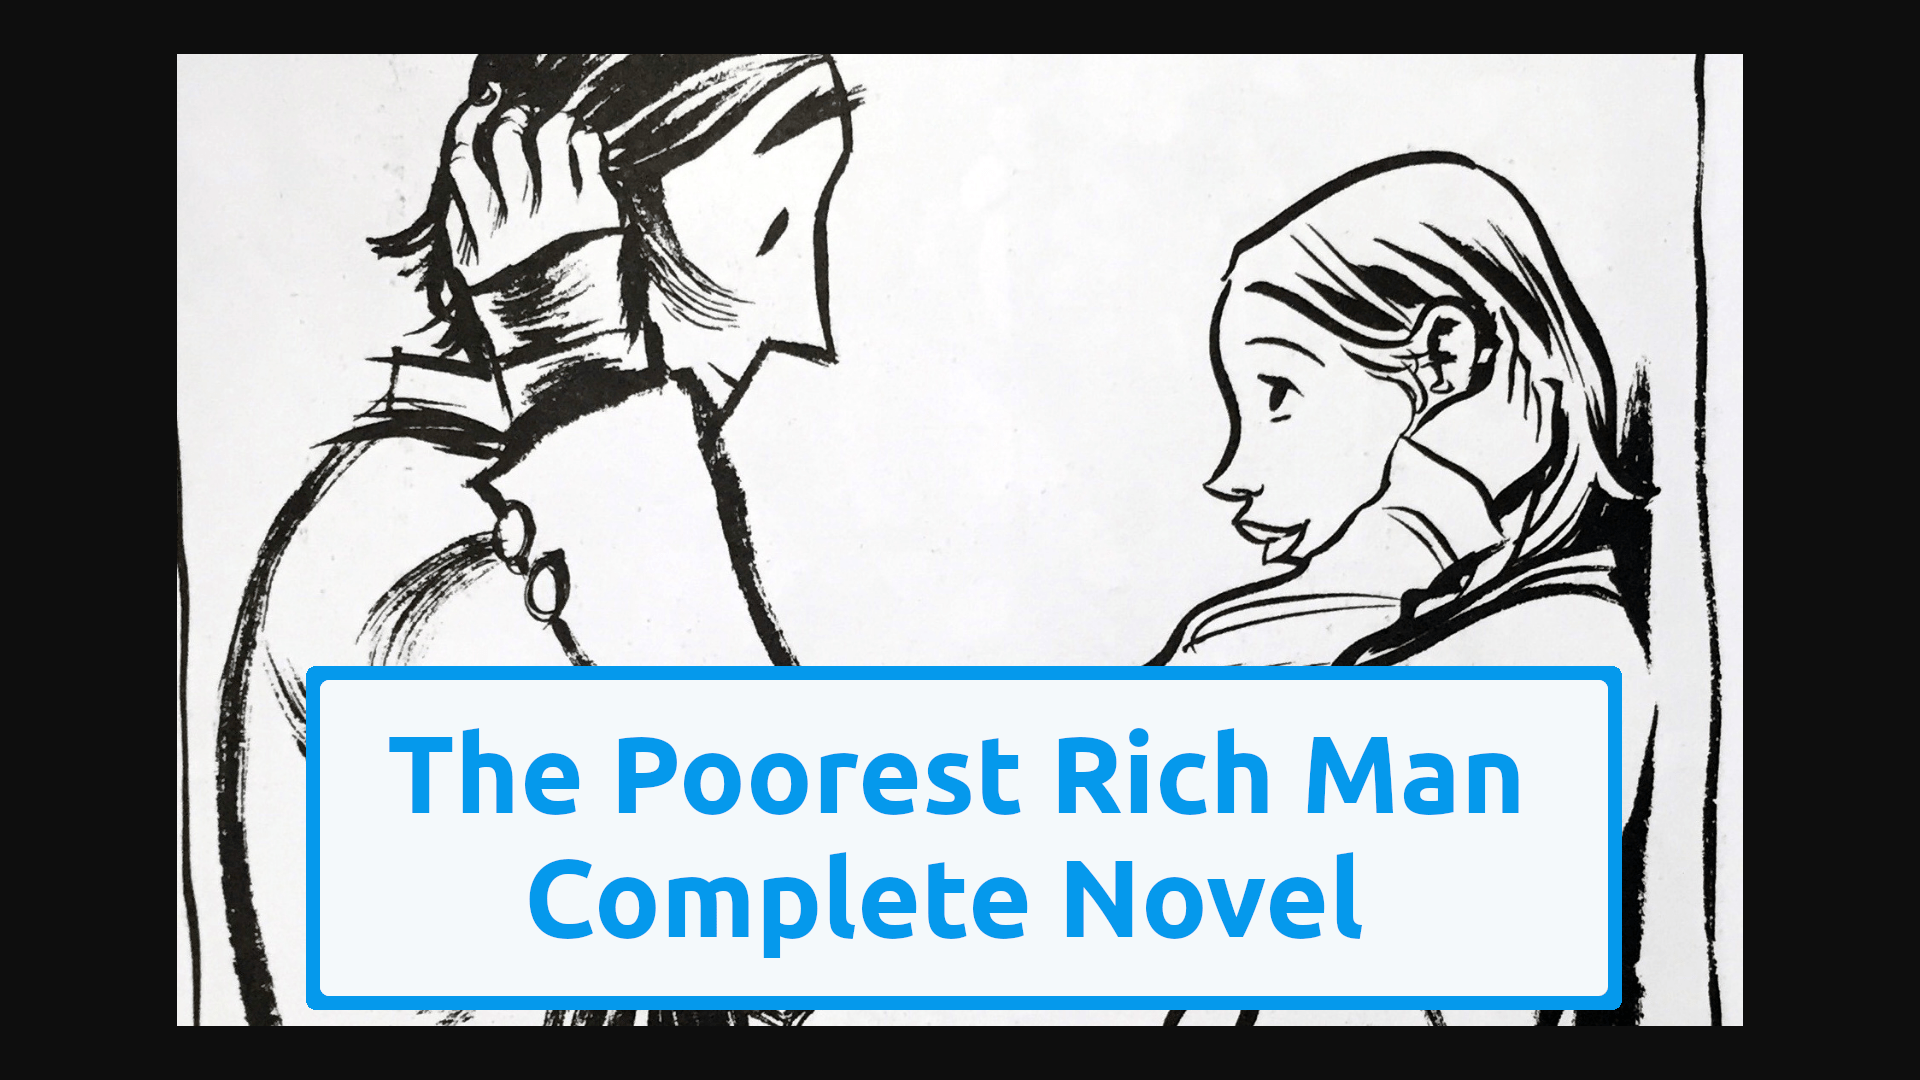 The Poorest Rich Man Novel